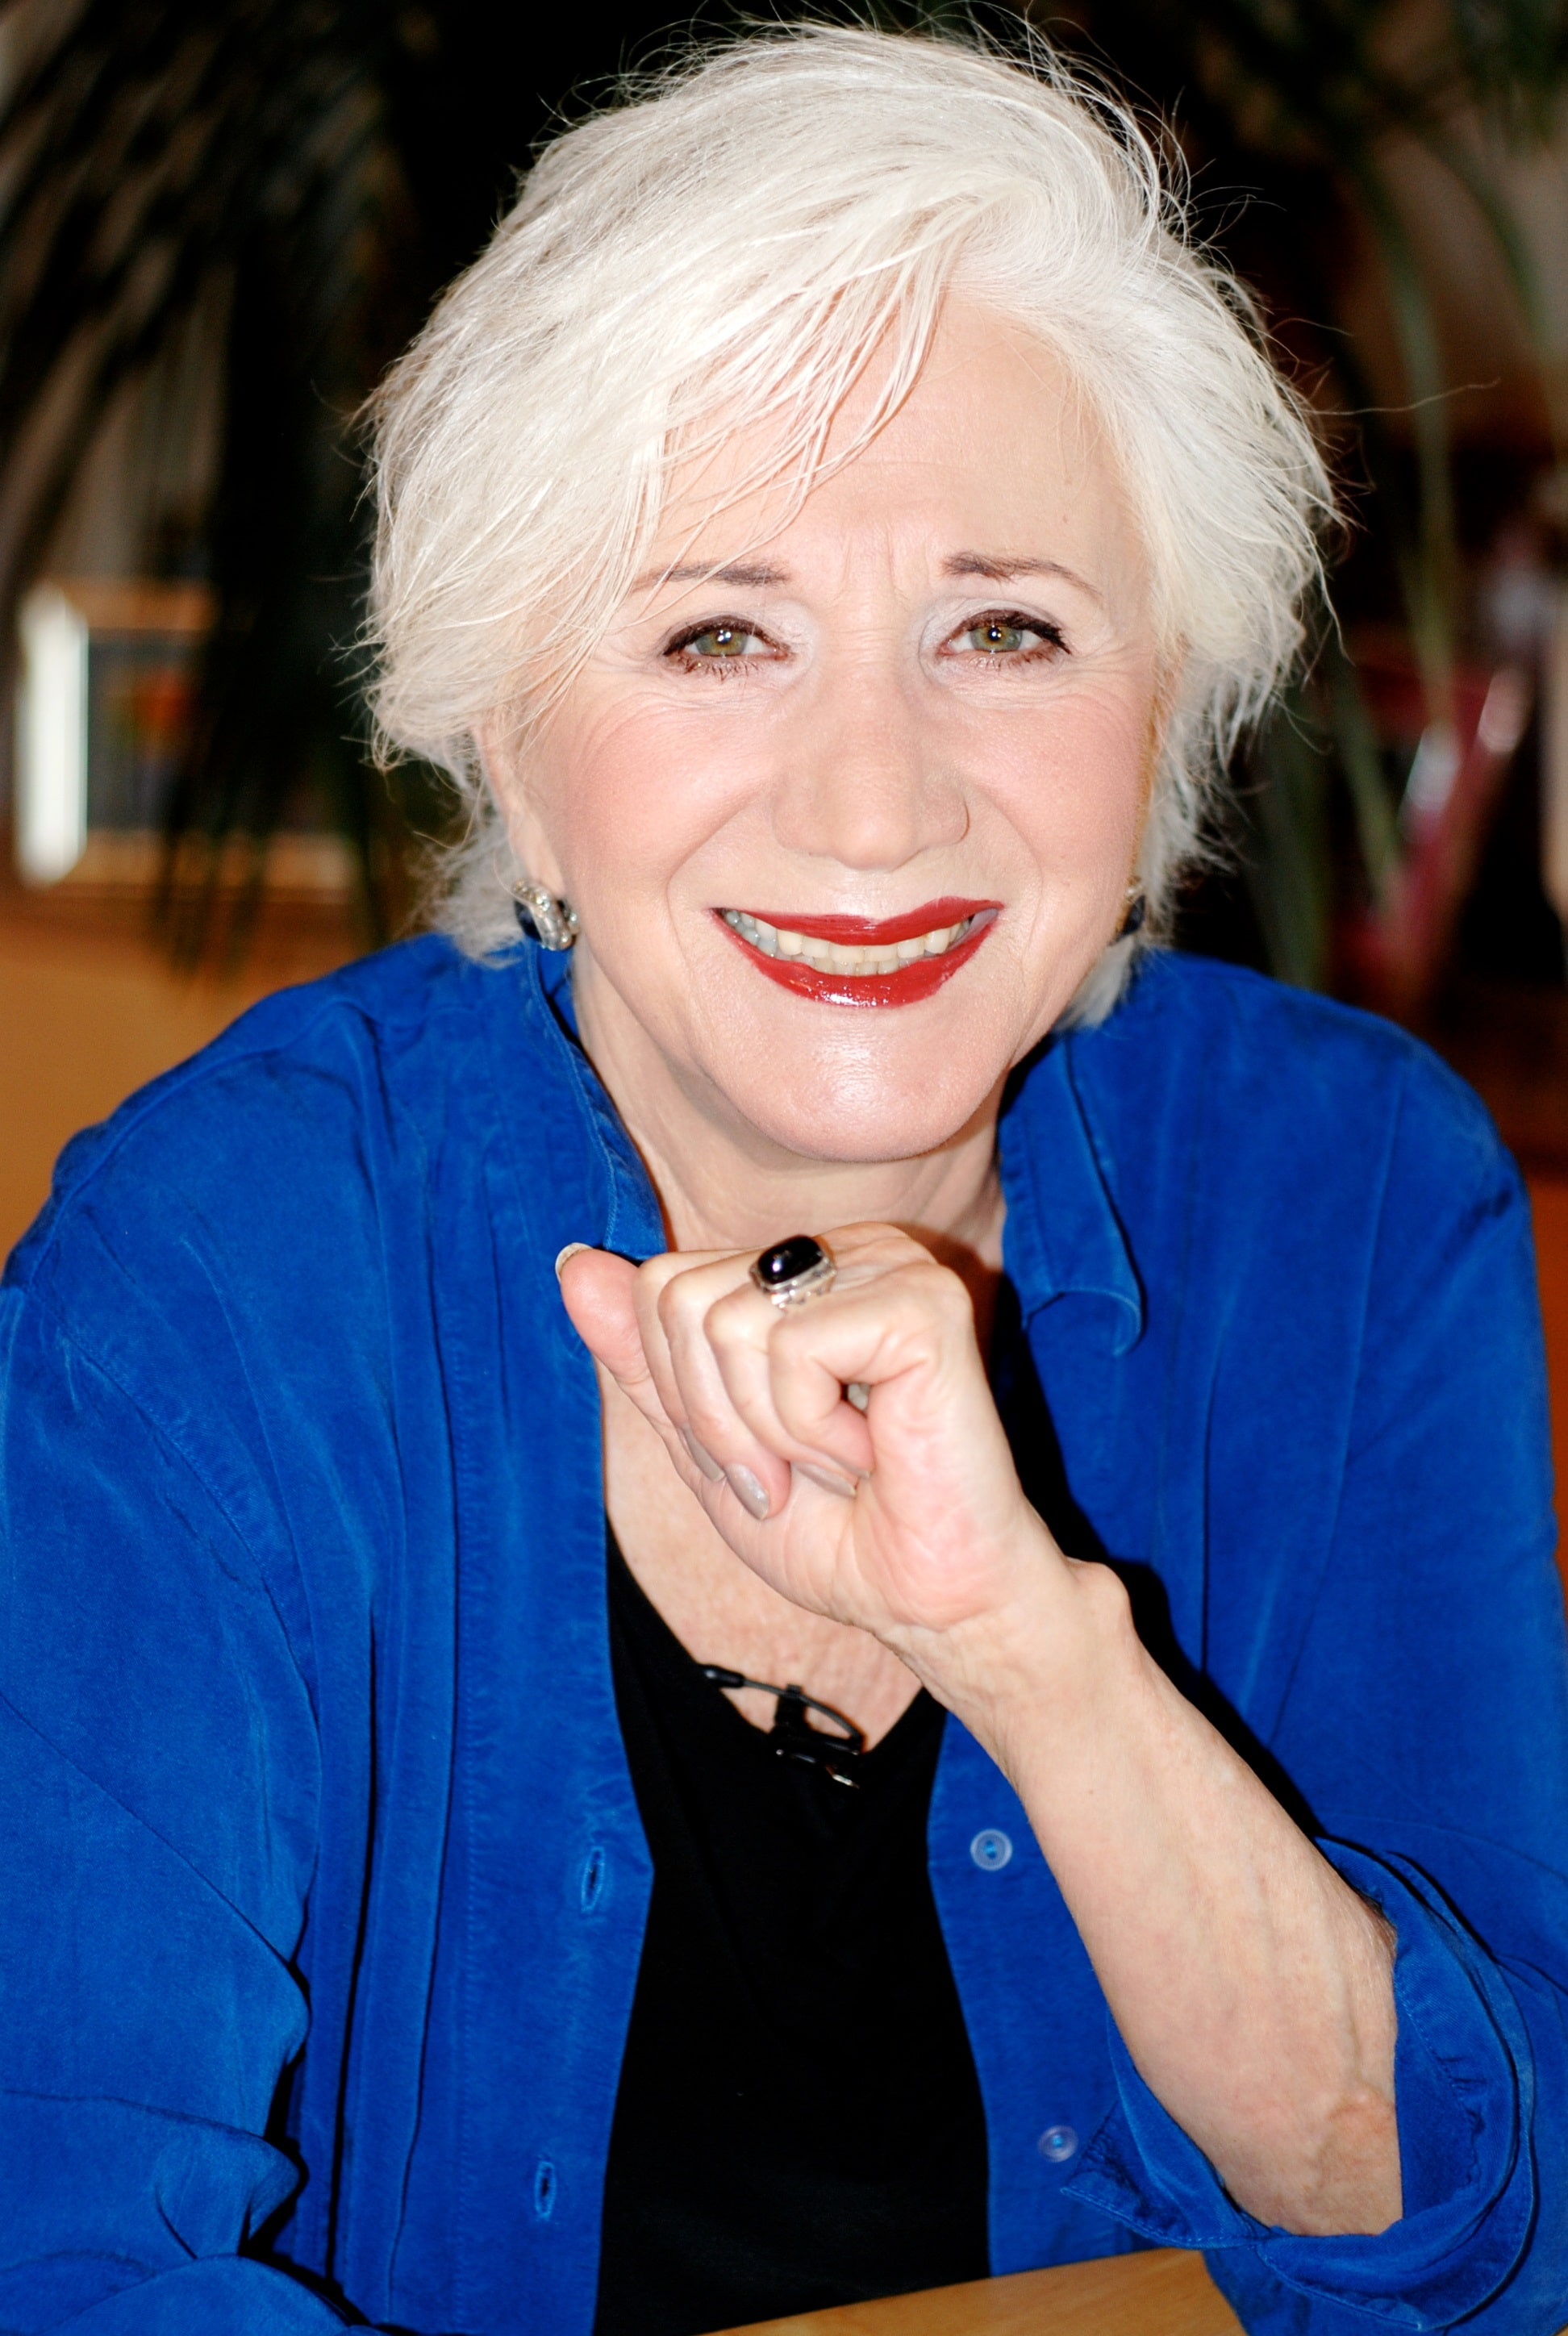 Olympia Dukakis HQ wallpapers